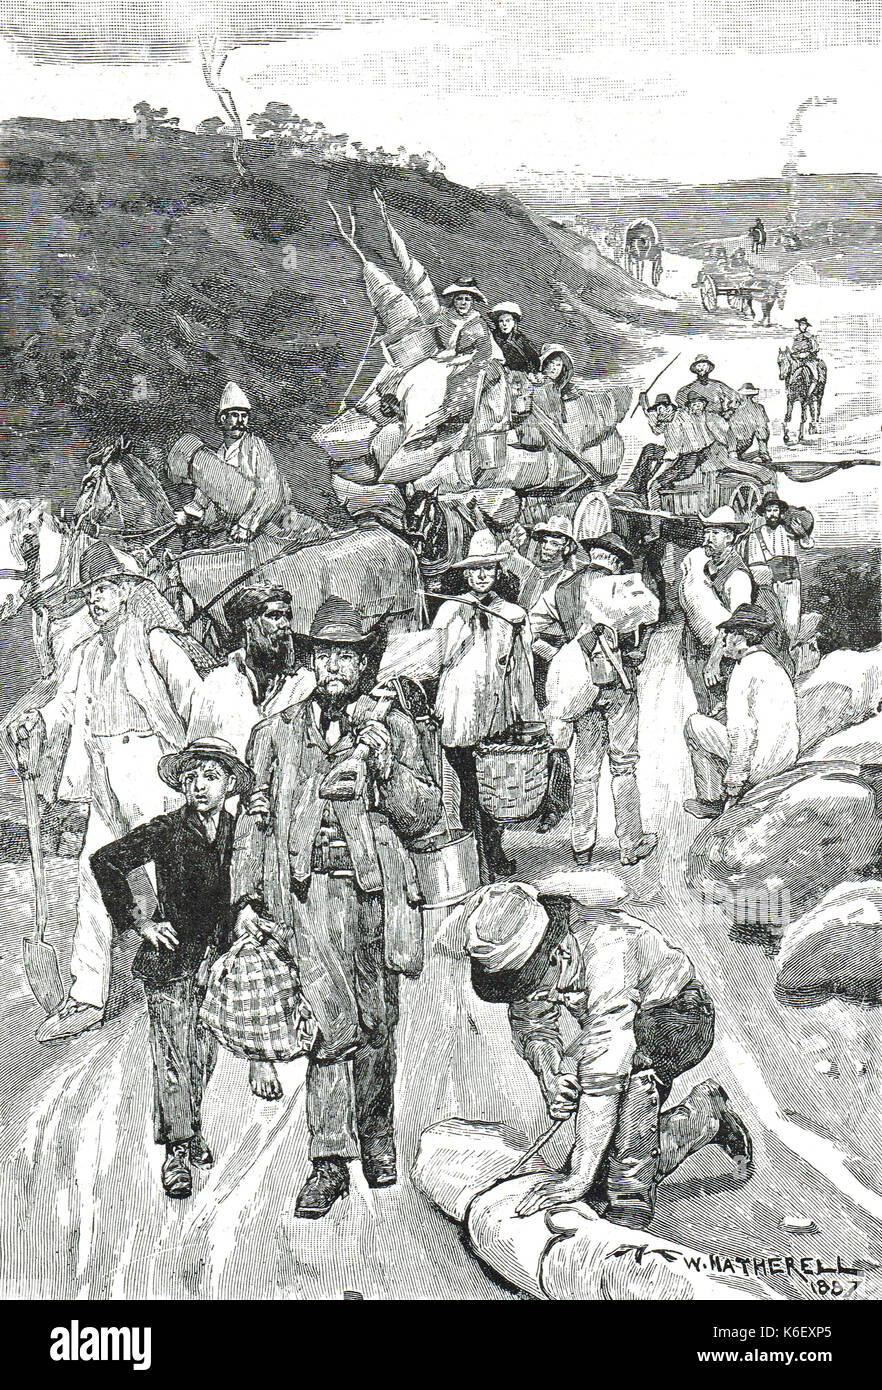 The Victorian gold rush (1851-1860s), en route to the Gold fields, Victoria, Australia - Stock Image